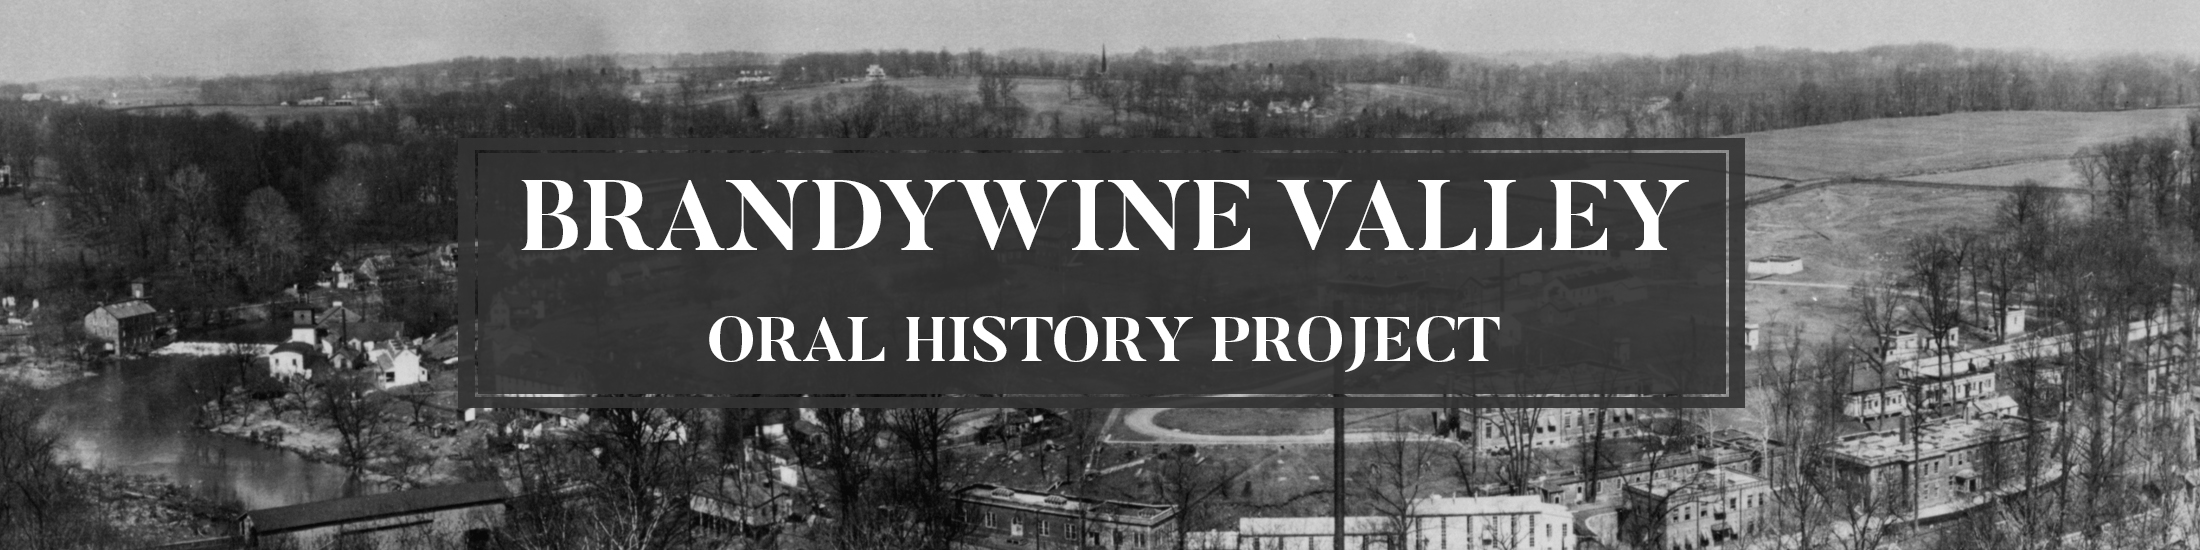 Brandywine Valley Oral History Project